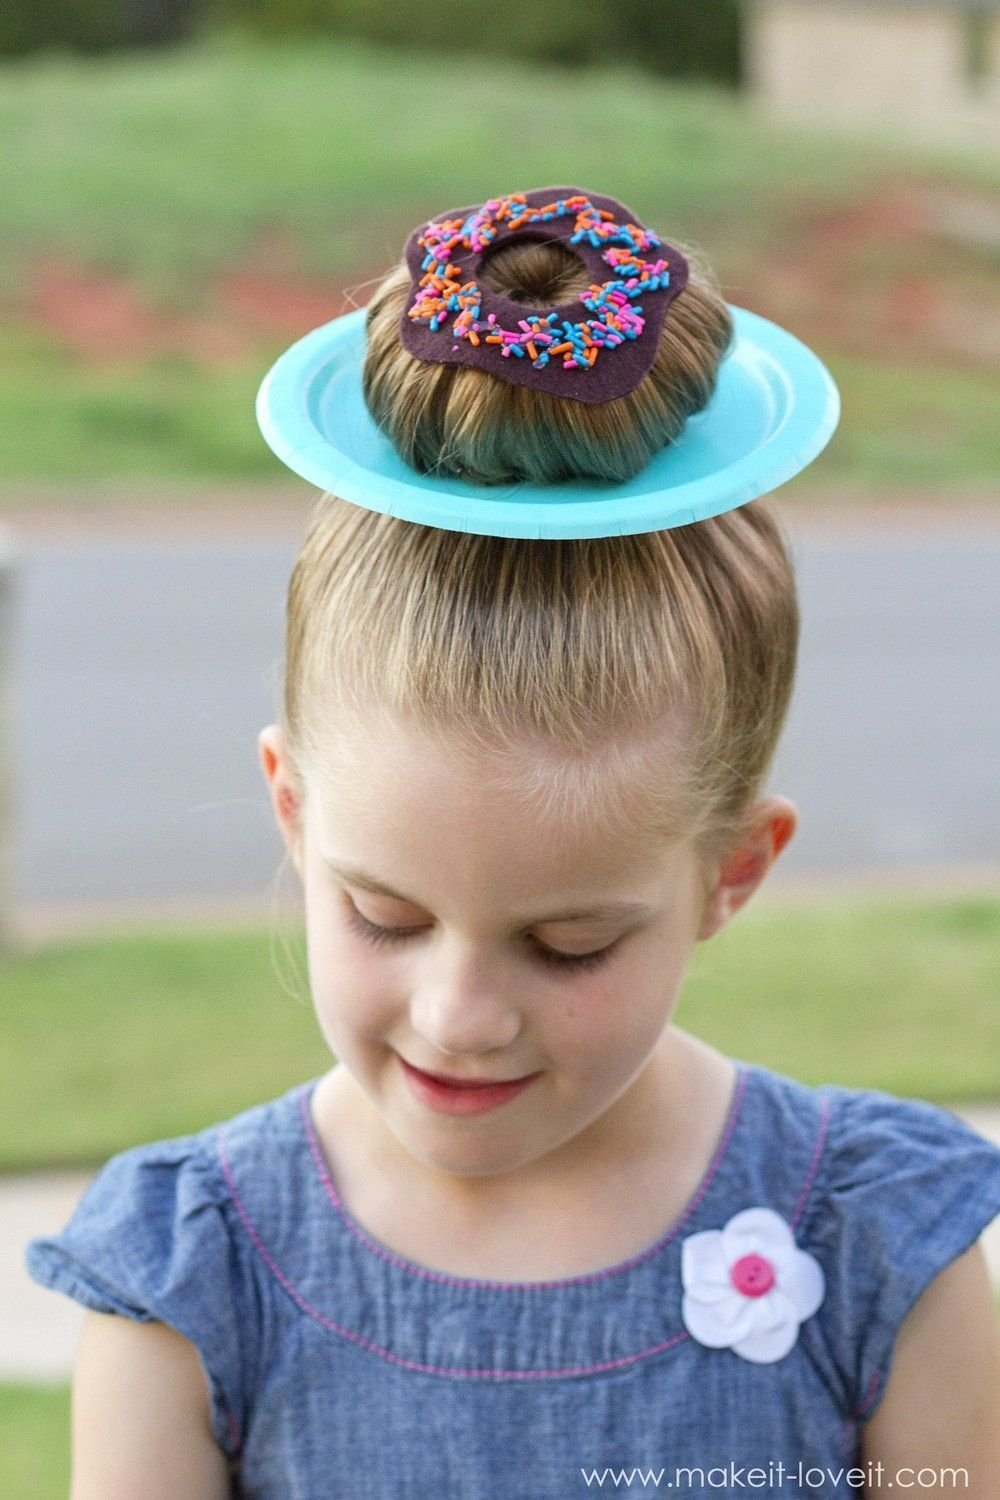 10 Elegant Crazy Hair Day Ideas For Long Hair 25 clever ideas for wacky hair day at school including 14